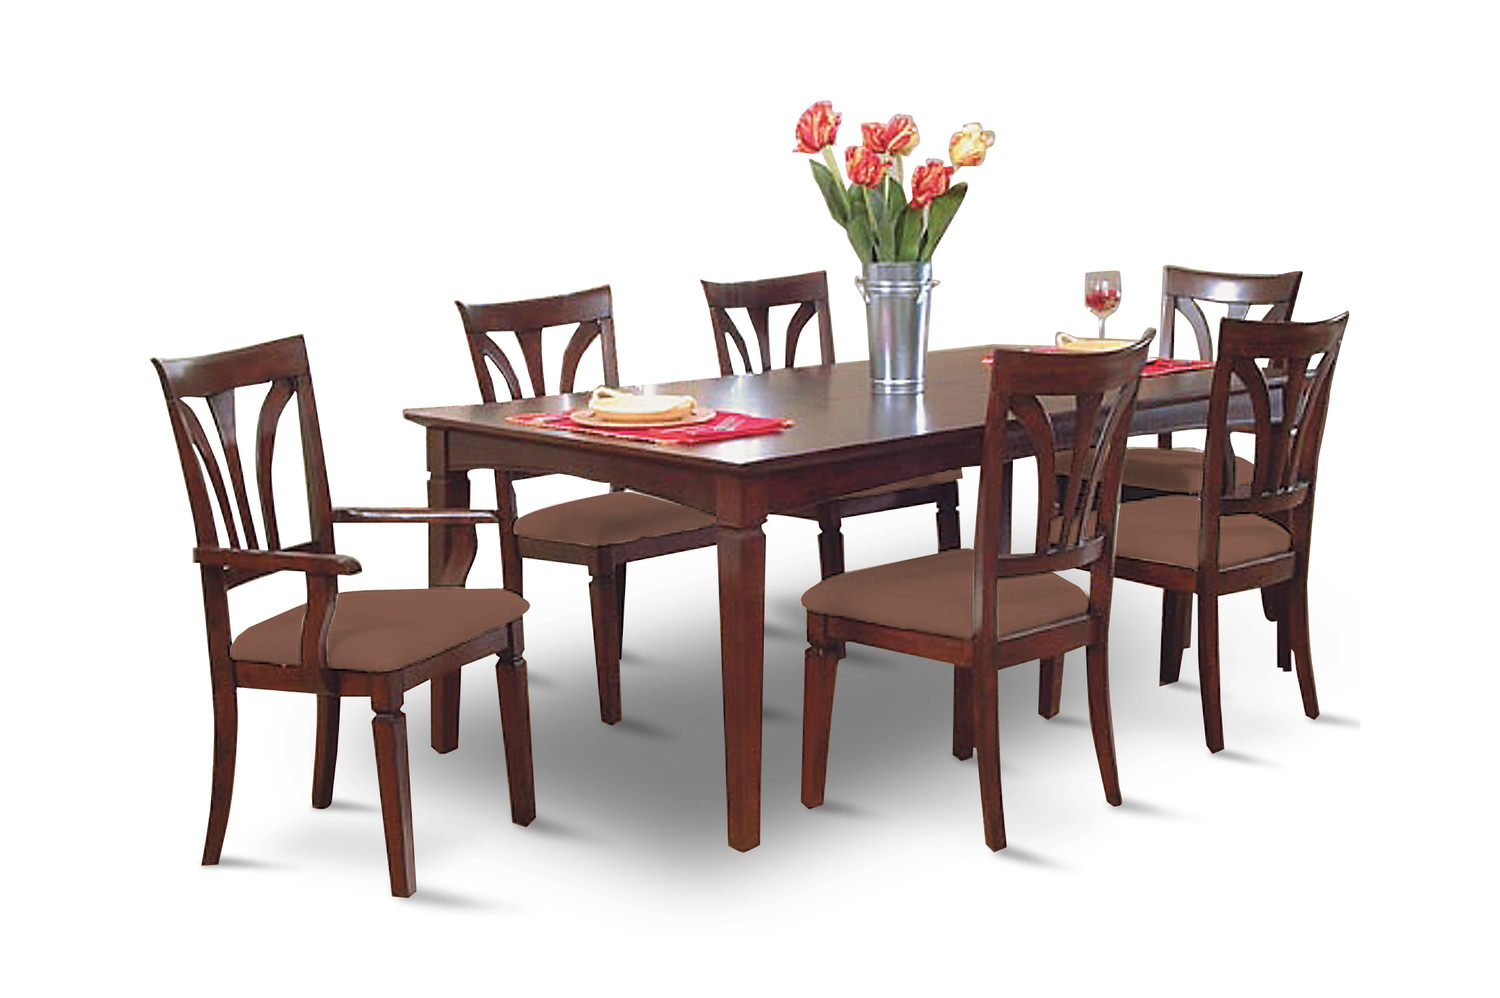 Madison Avenue Dining Table With 4 Side Chairs And 2 Arm